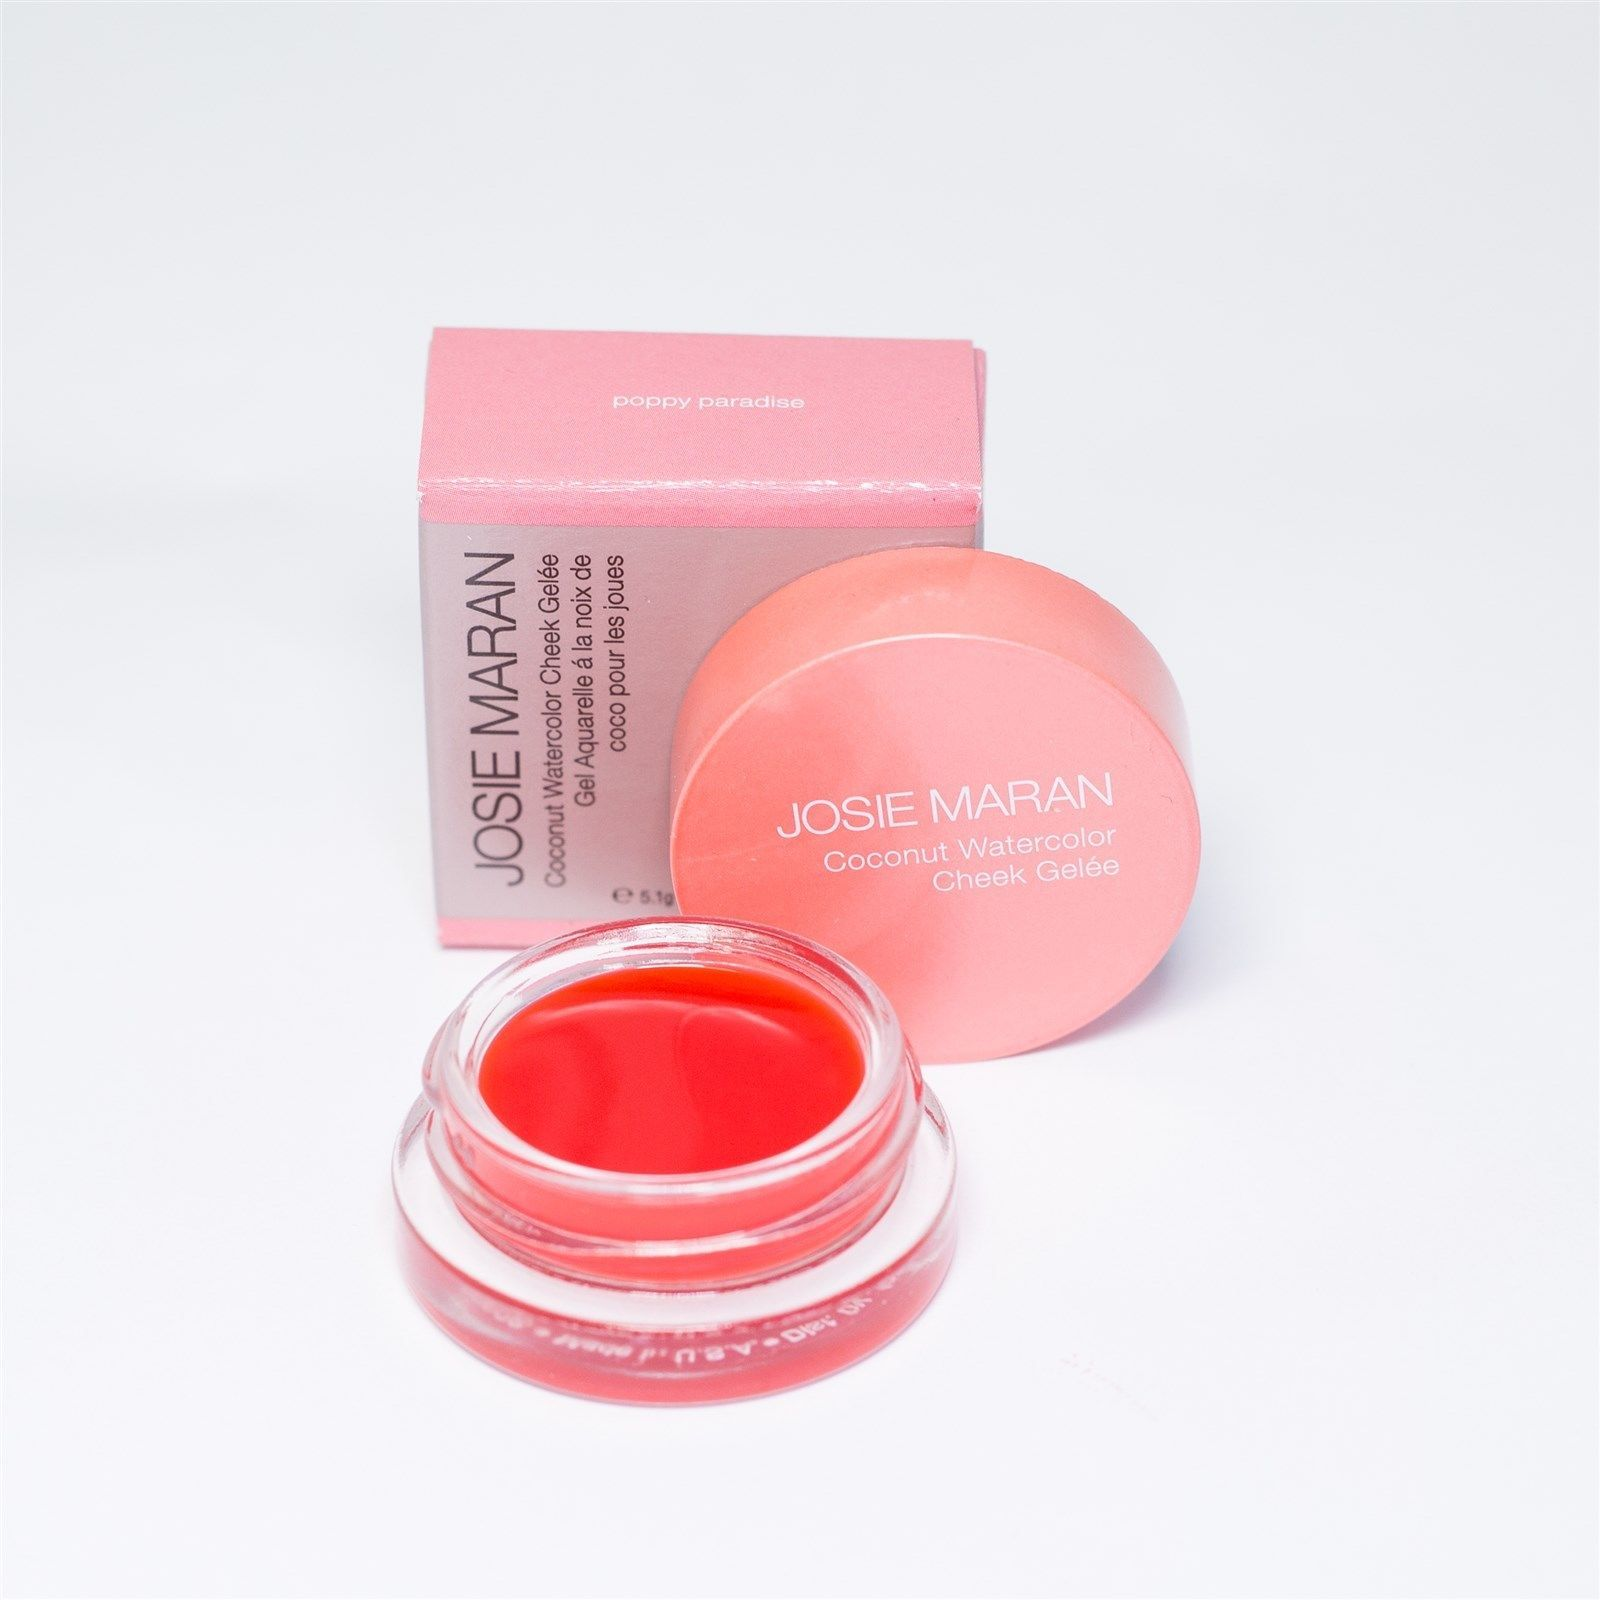 Josie Maran Coconut Watercolor Cheek Gelee Poppy Paradise Hot